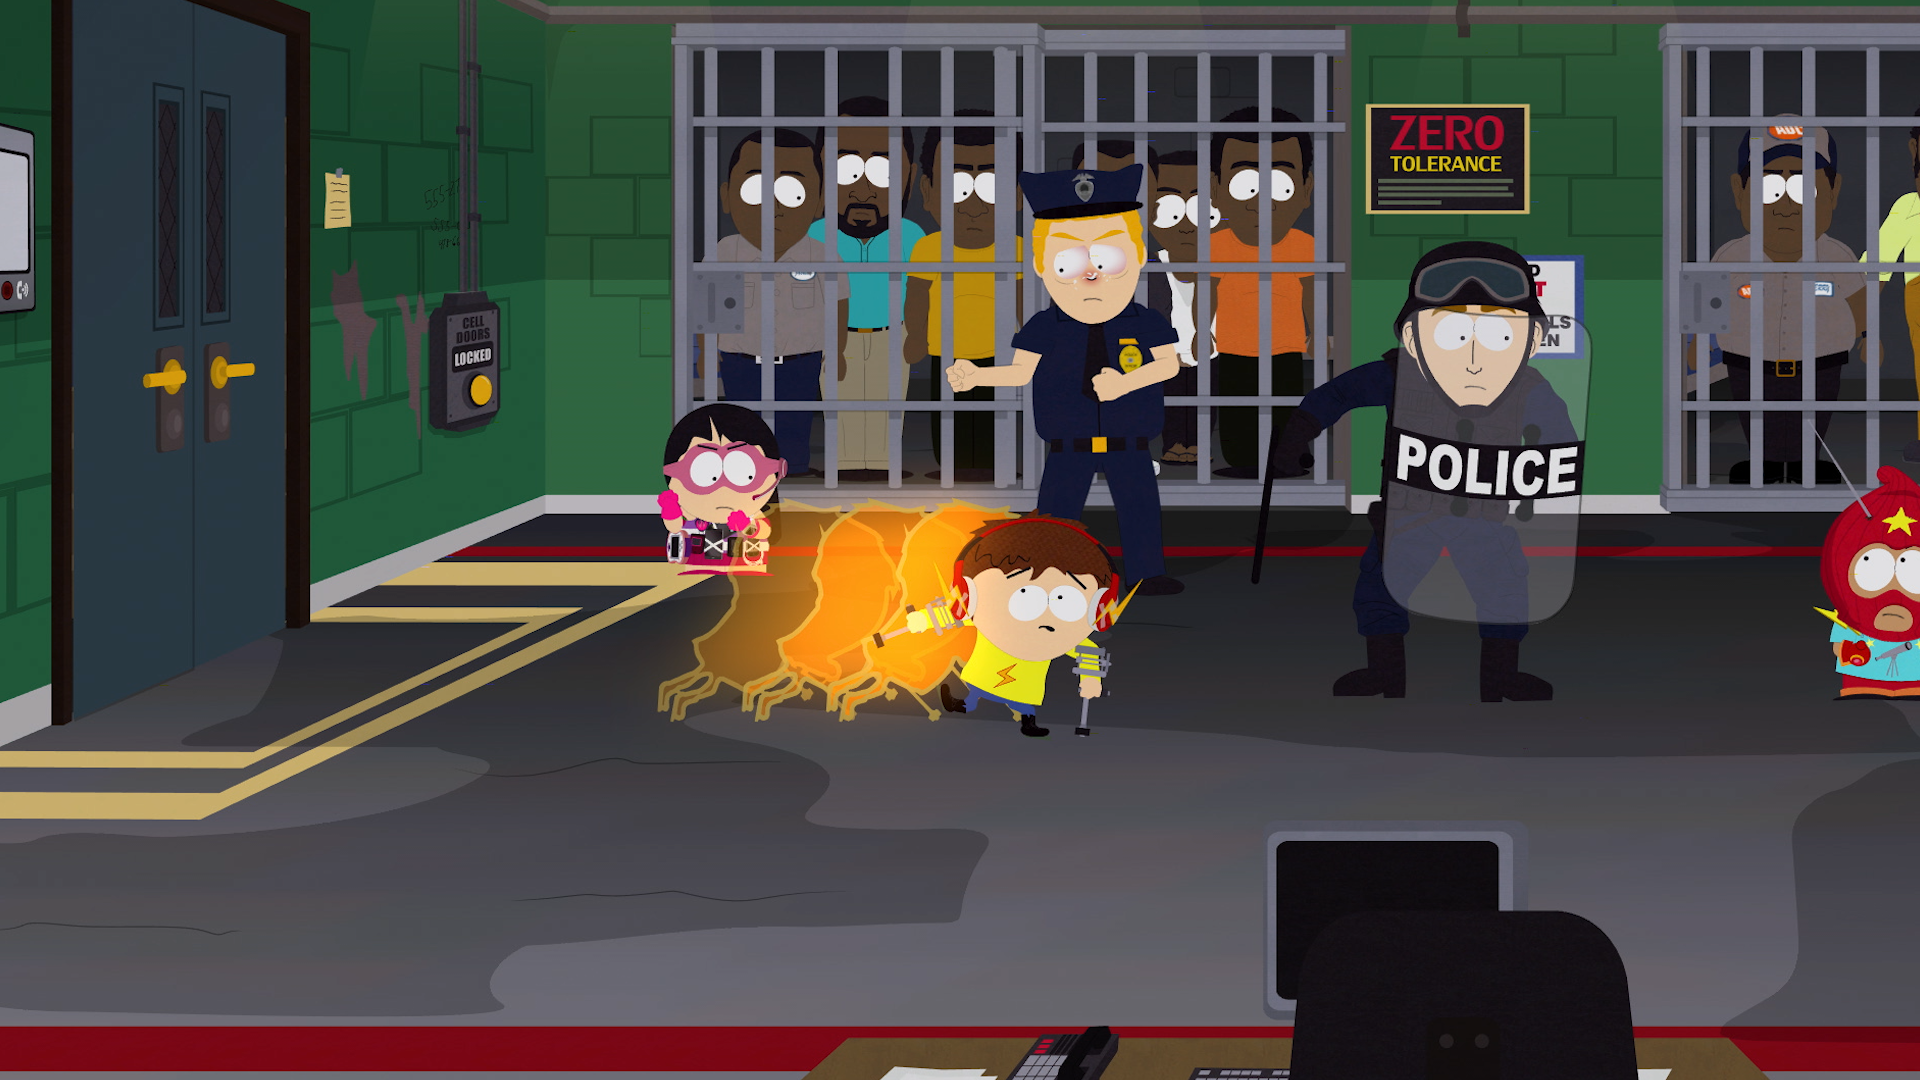 Some of the content in the South Park game will likely offend